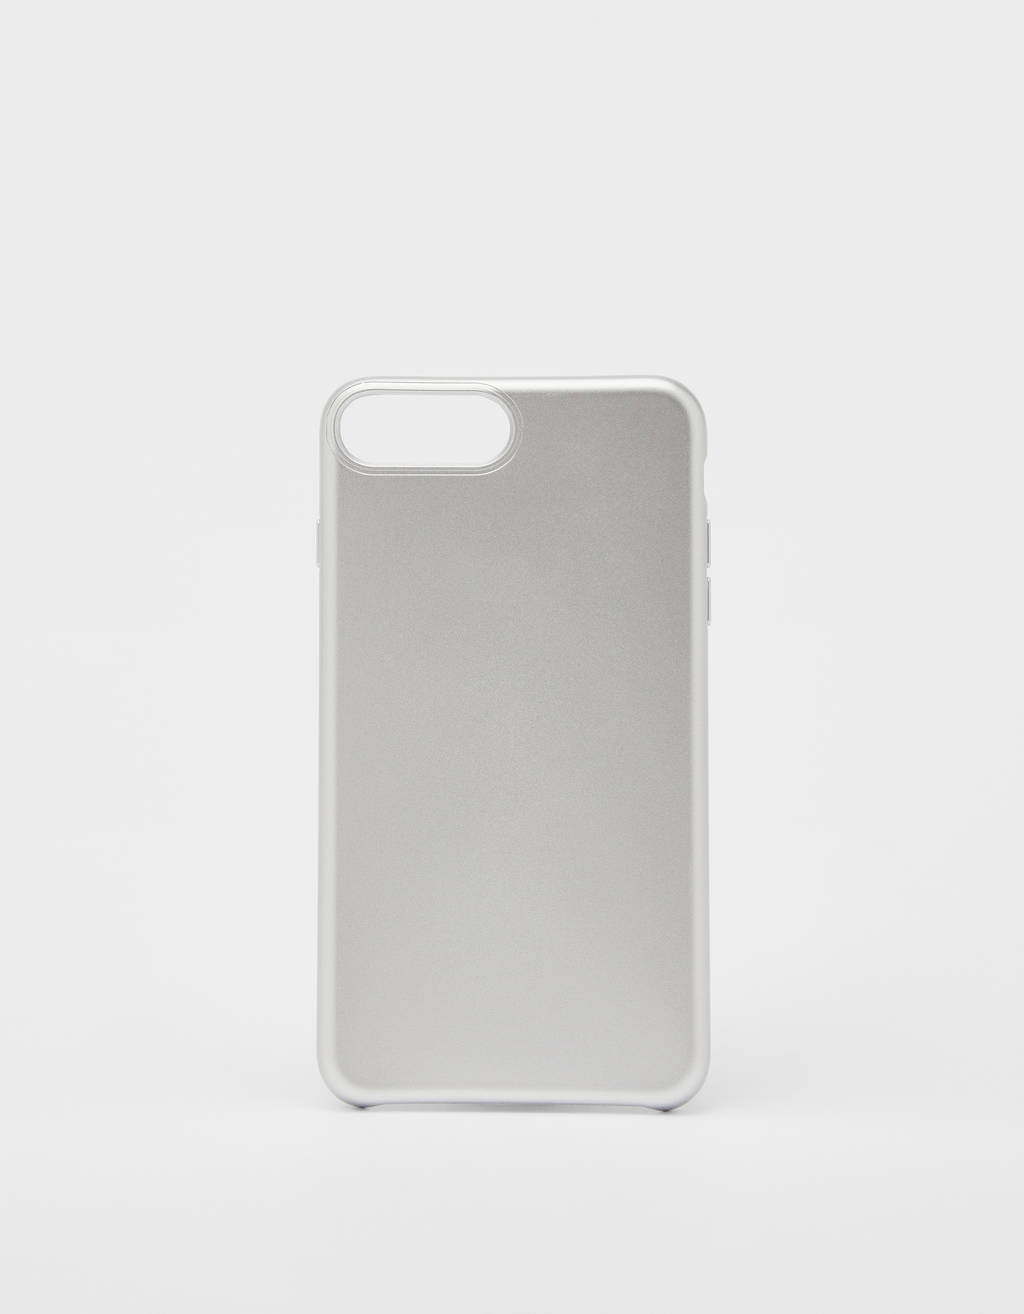 Monochrome iPhone 6 Plus / 7 Plus / 8 Plus case